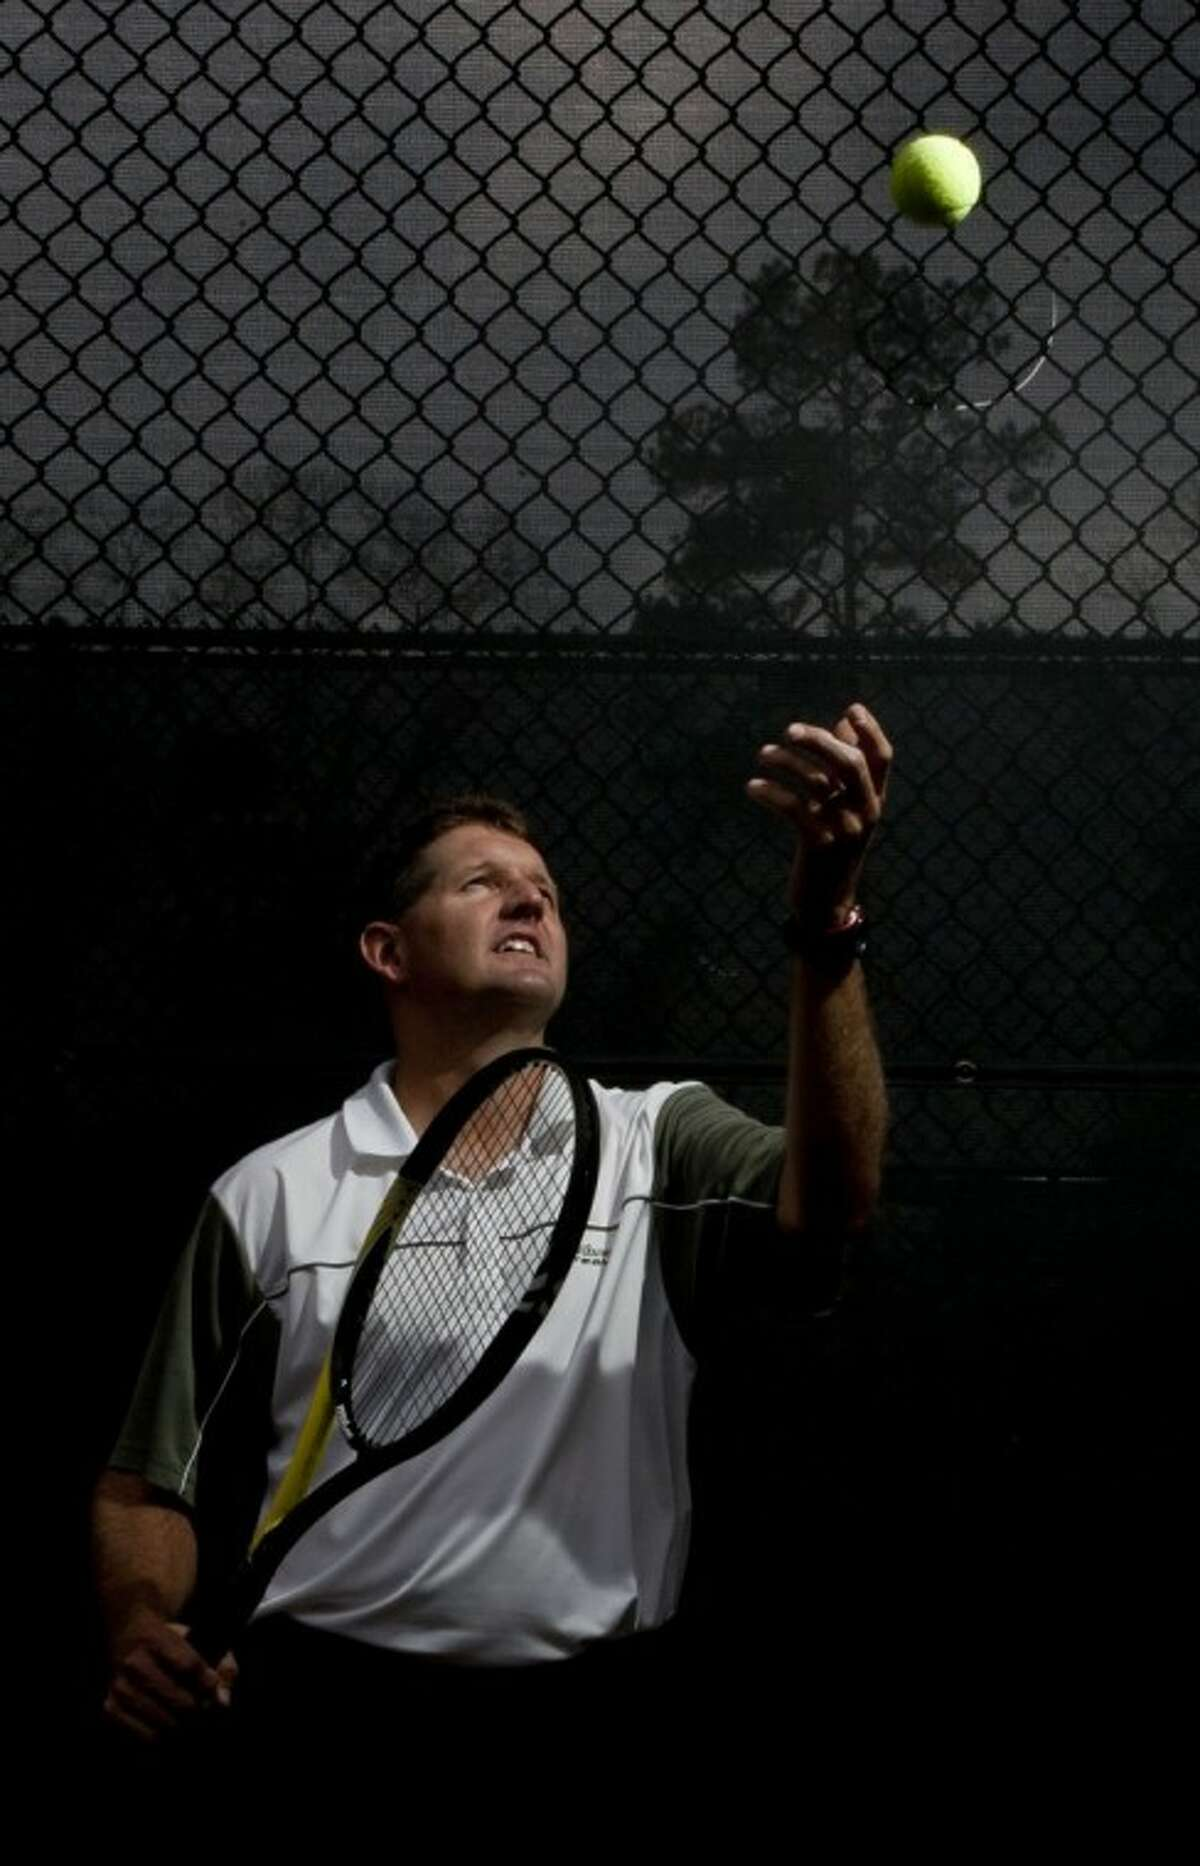 Cary Lothringer, 39, director of tennis at The Club at Carlton Woods, won the 35-and-up doubles championship at the United States Professional Tennis Association International Championships at the USPTA World Conference in La Quinta, Calif., in September. The tennis pro also won a national competition recently gaining popularity, the fifth annual USPTA Cardio Tennis National Feeding Shootout.